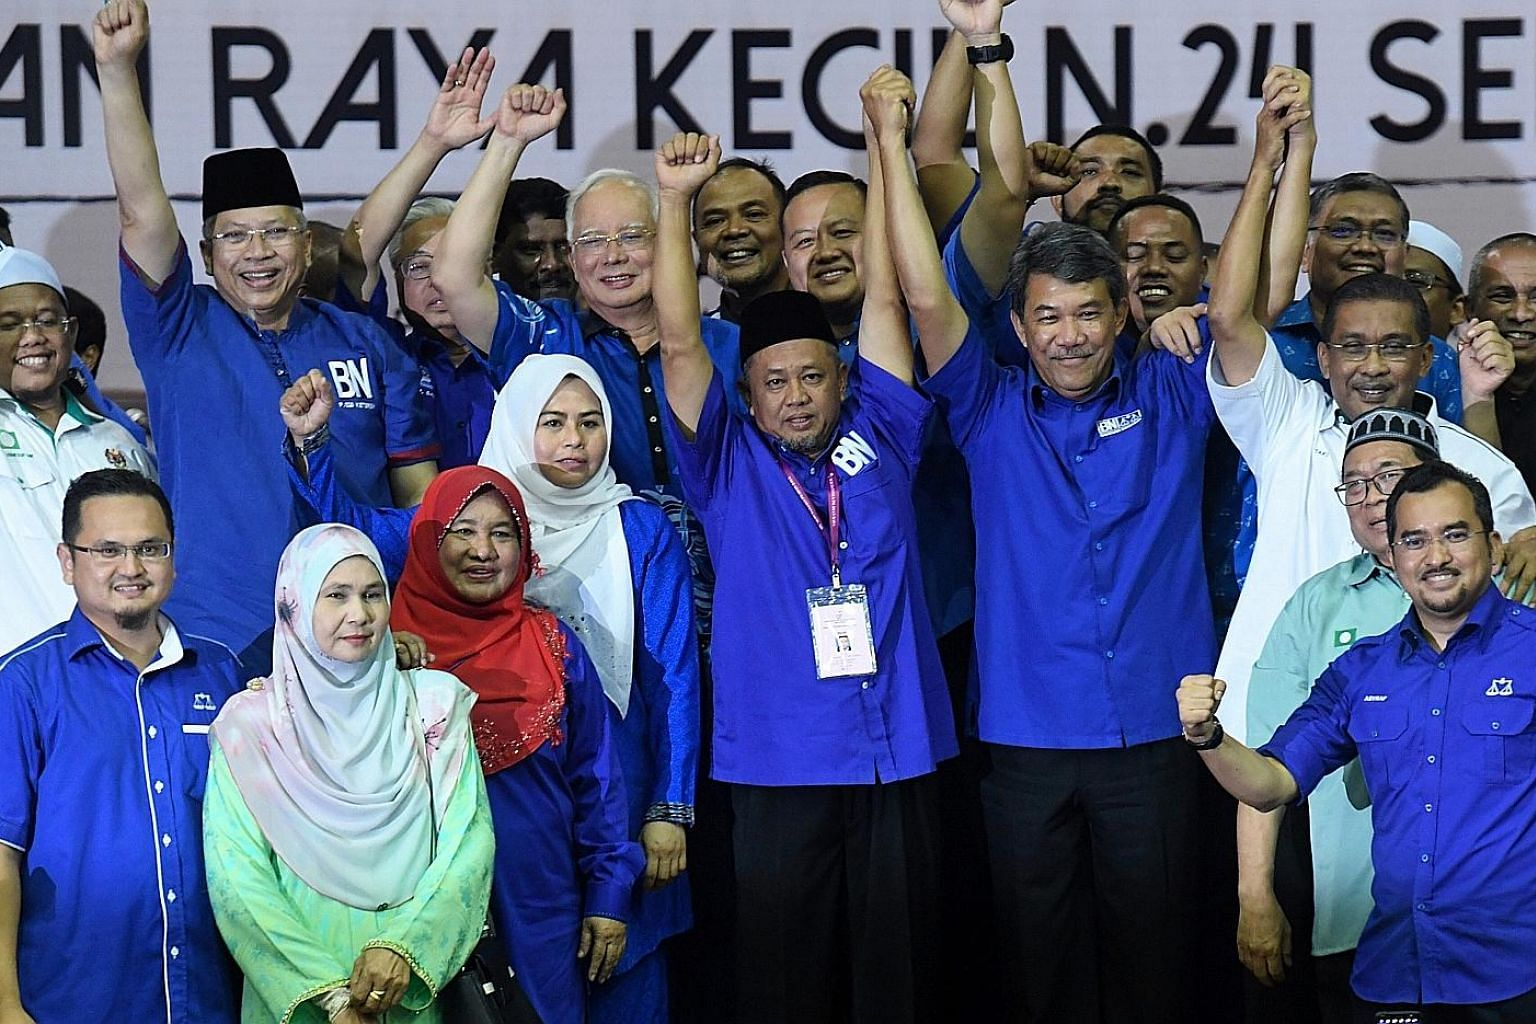 BN candidate Zakaria Hanafi (centre) celebrating his win in a by-election earlier this year with fellow opposition party members including Najib Razak (behind him). PHOTO: BERNAMA